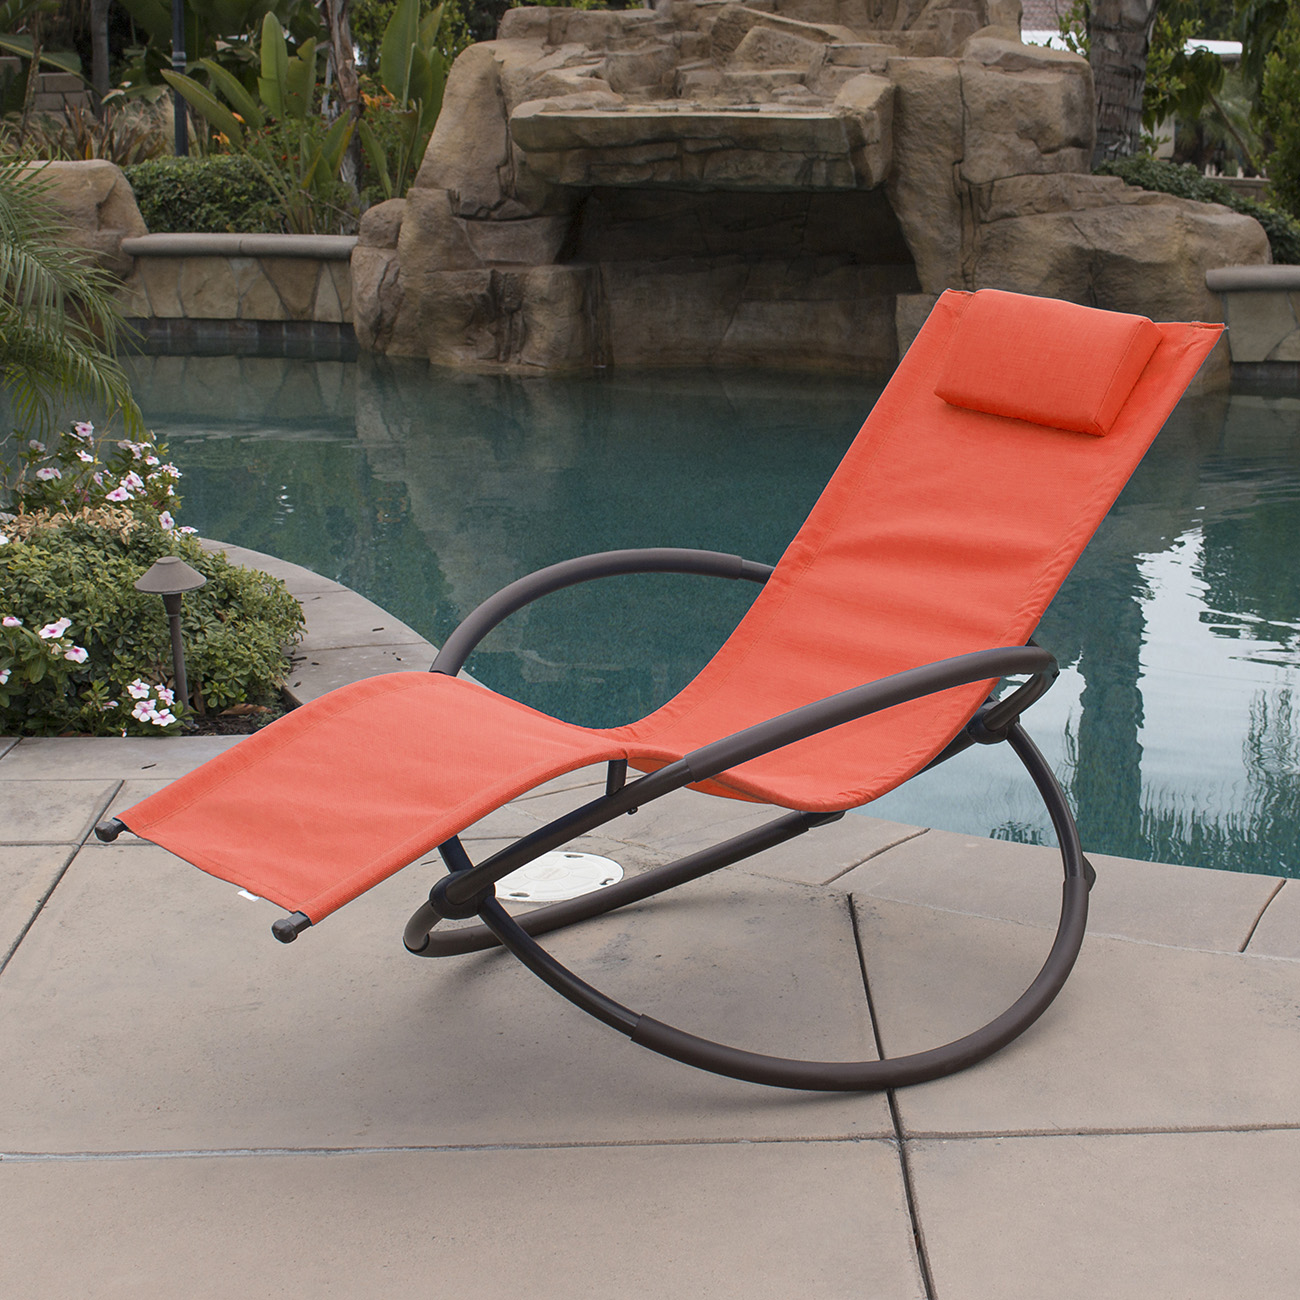 Orbital foldable zero gravity lounger chair rocking for Chaise zero gravite